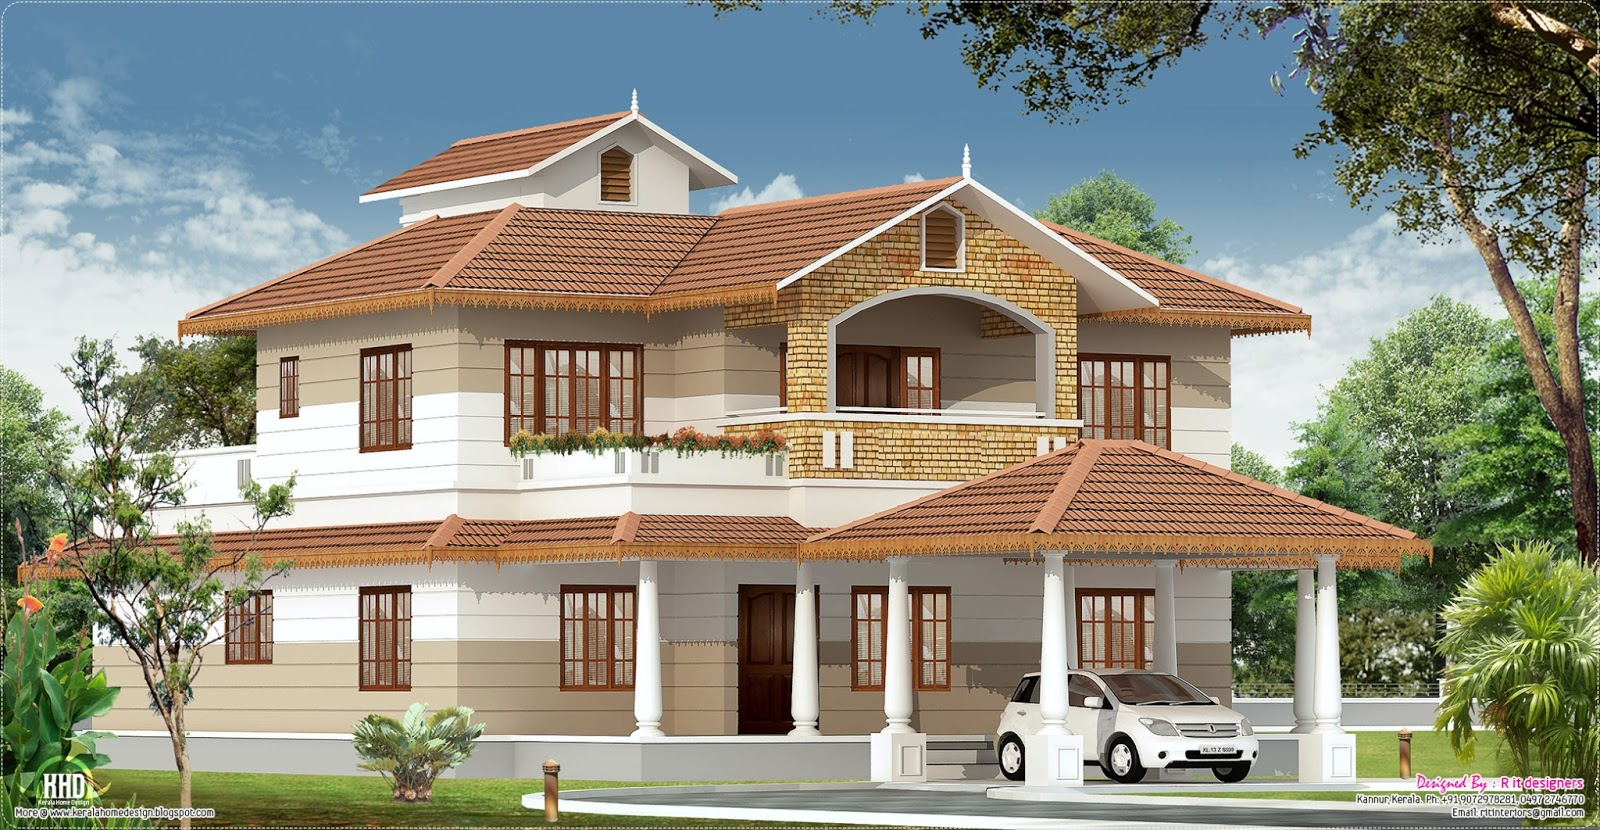 2700 sq.feet Kerala home with interior designs